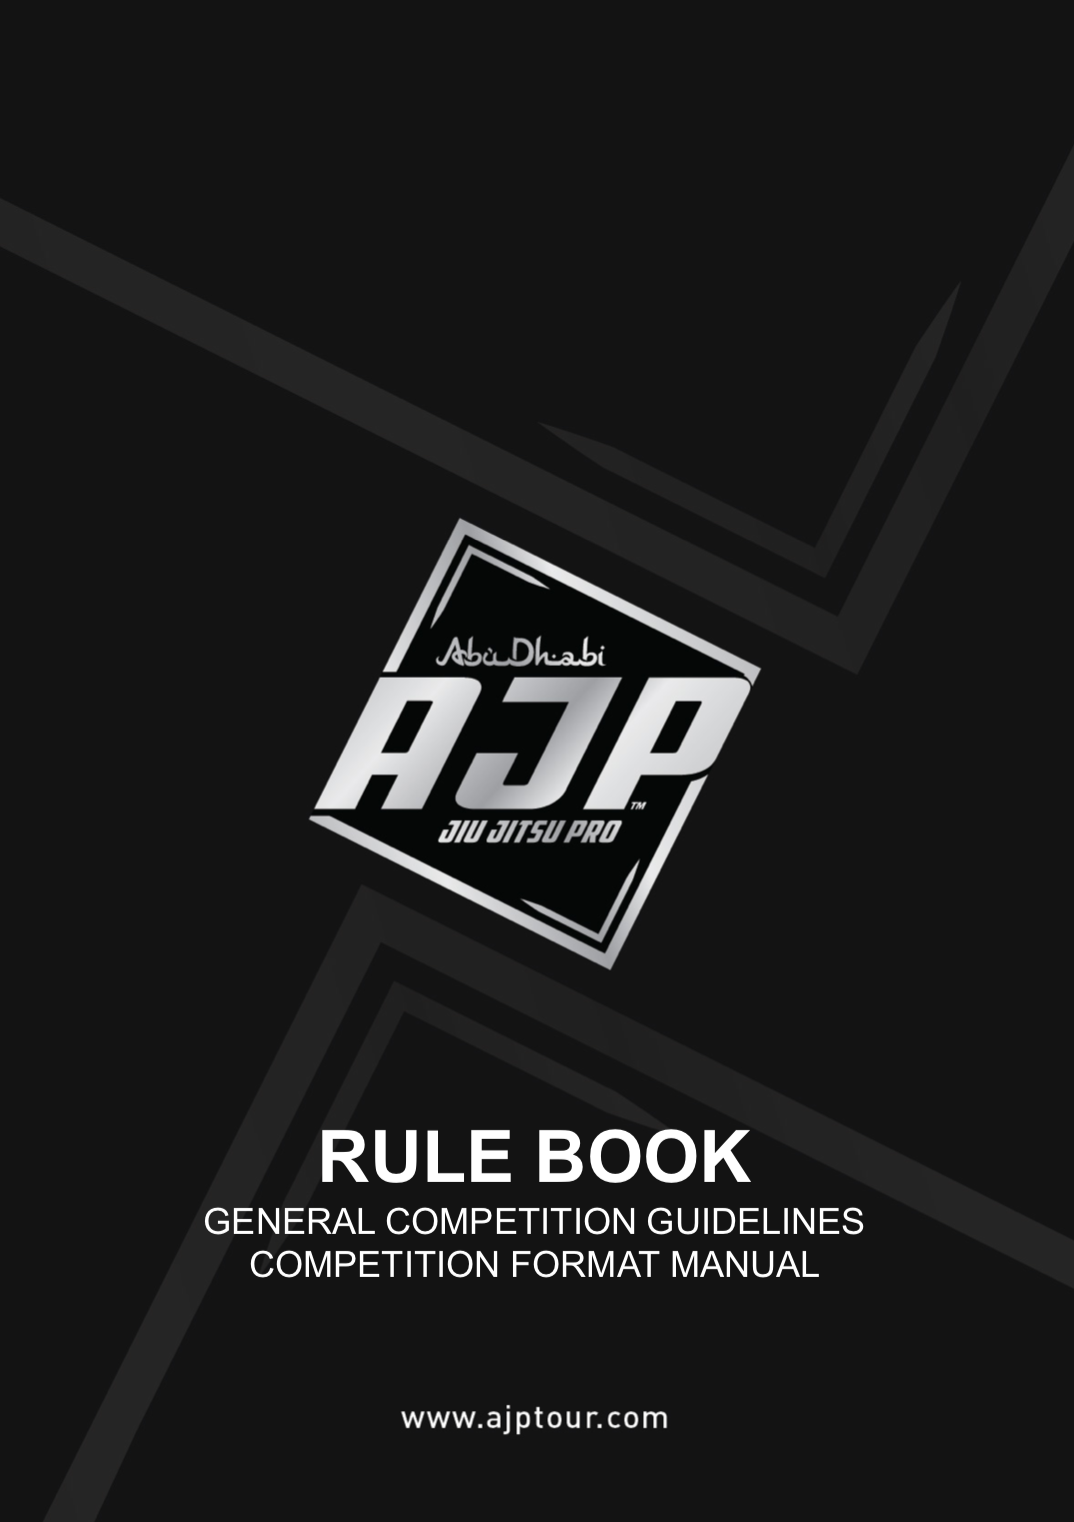 ajp-rules-20190716054602.png